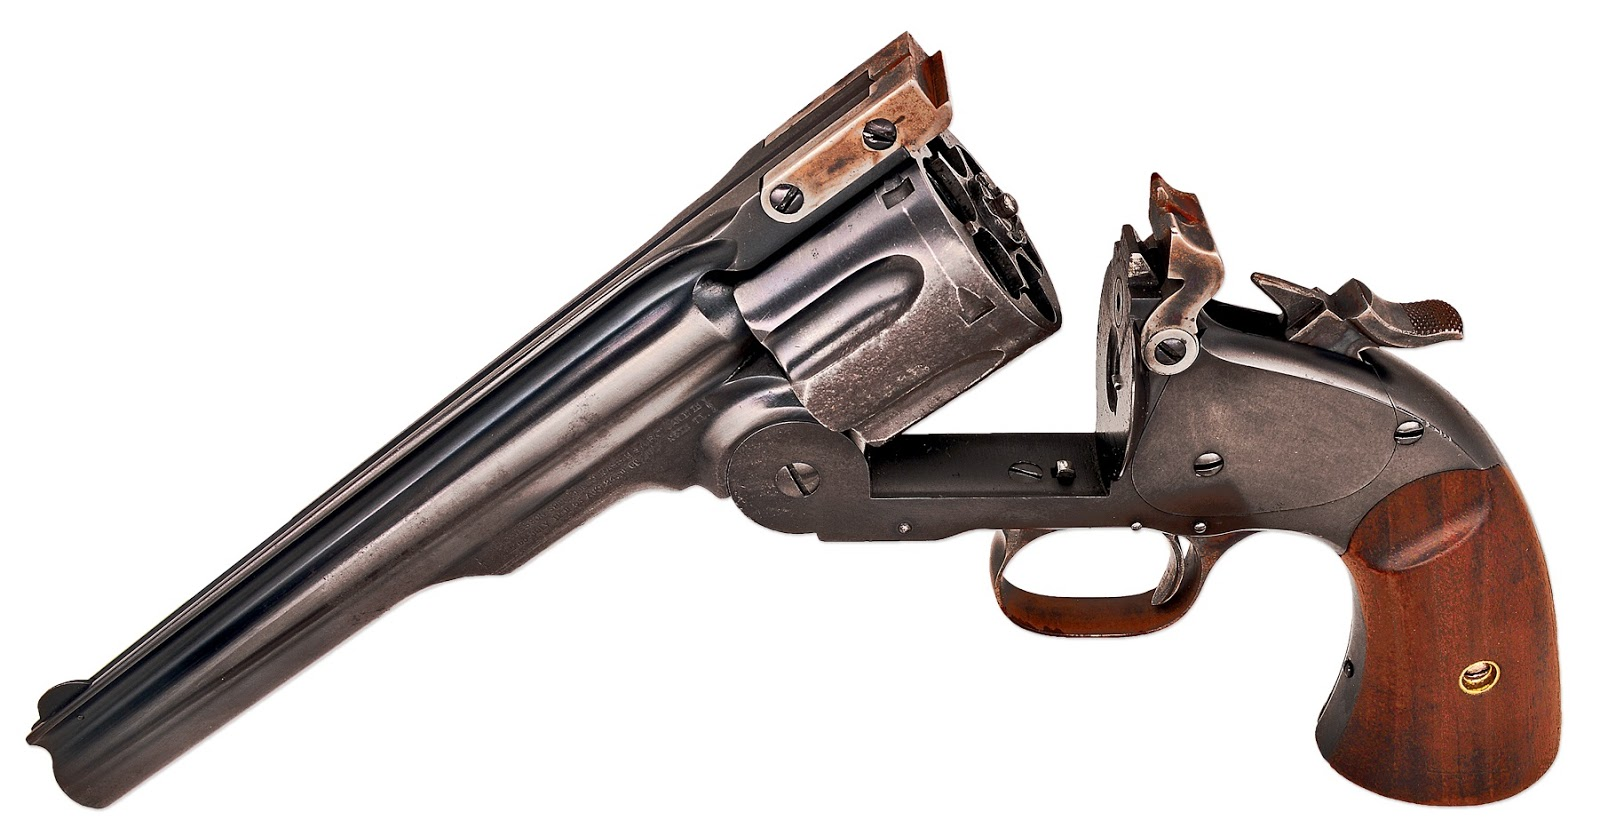 The American Cowboy Chronicles: Smith & Wesson - A Tough